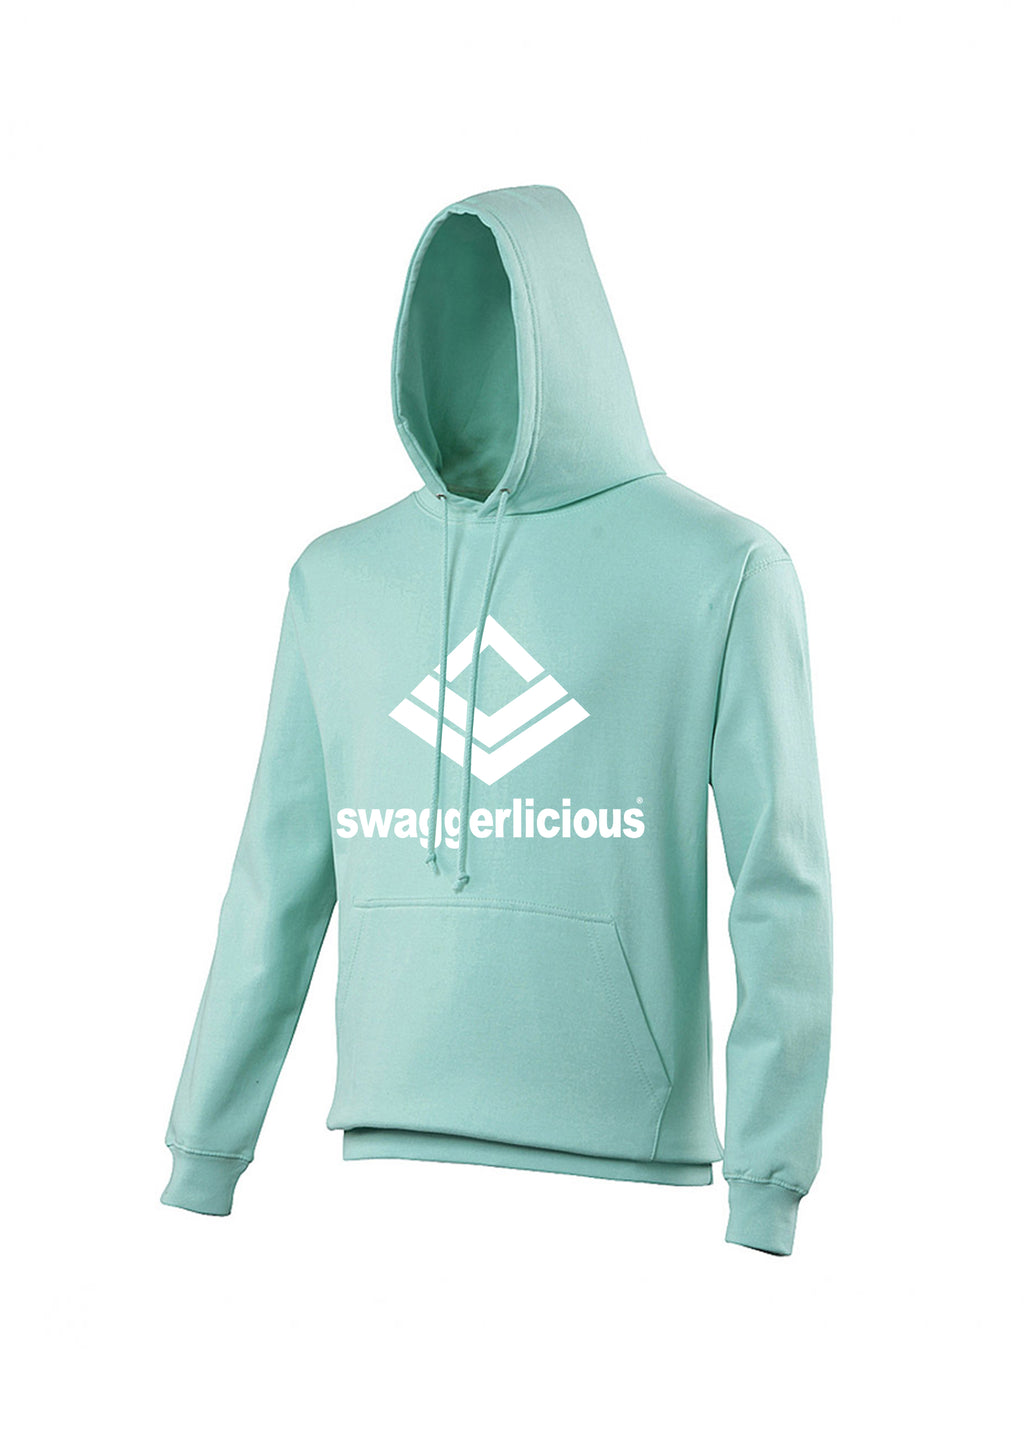 Mint Green Swaggerlicious Classic Sports Hoodie - swaggerlicious-clothing.com